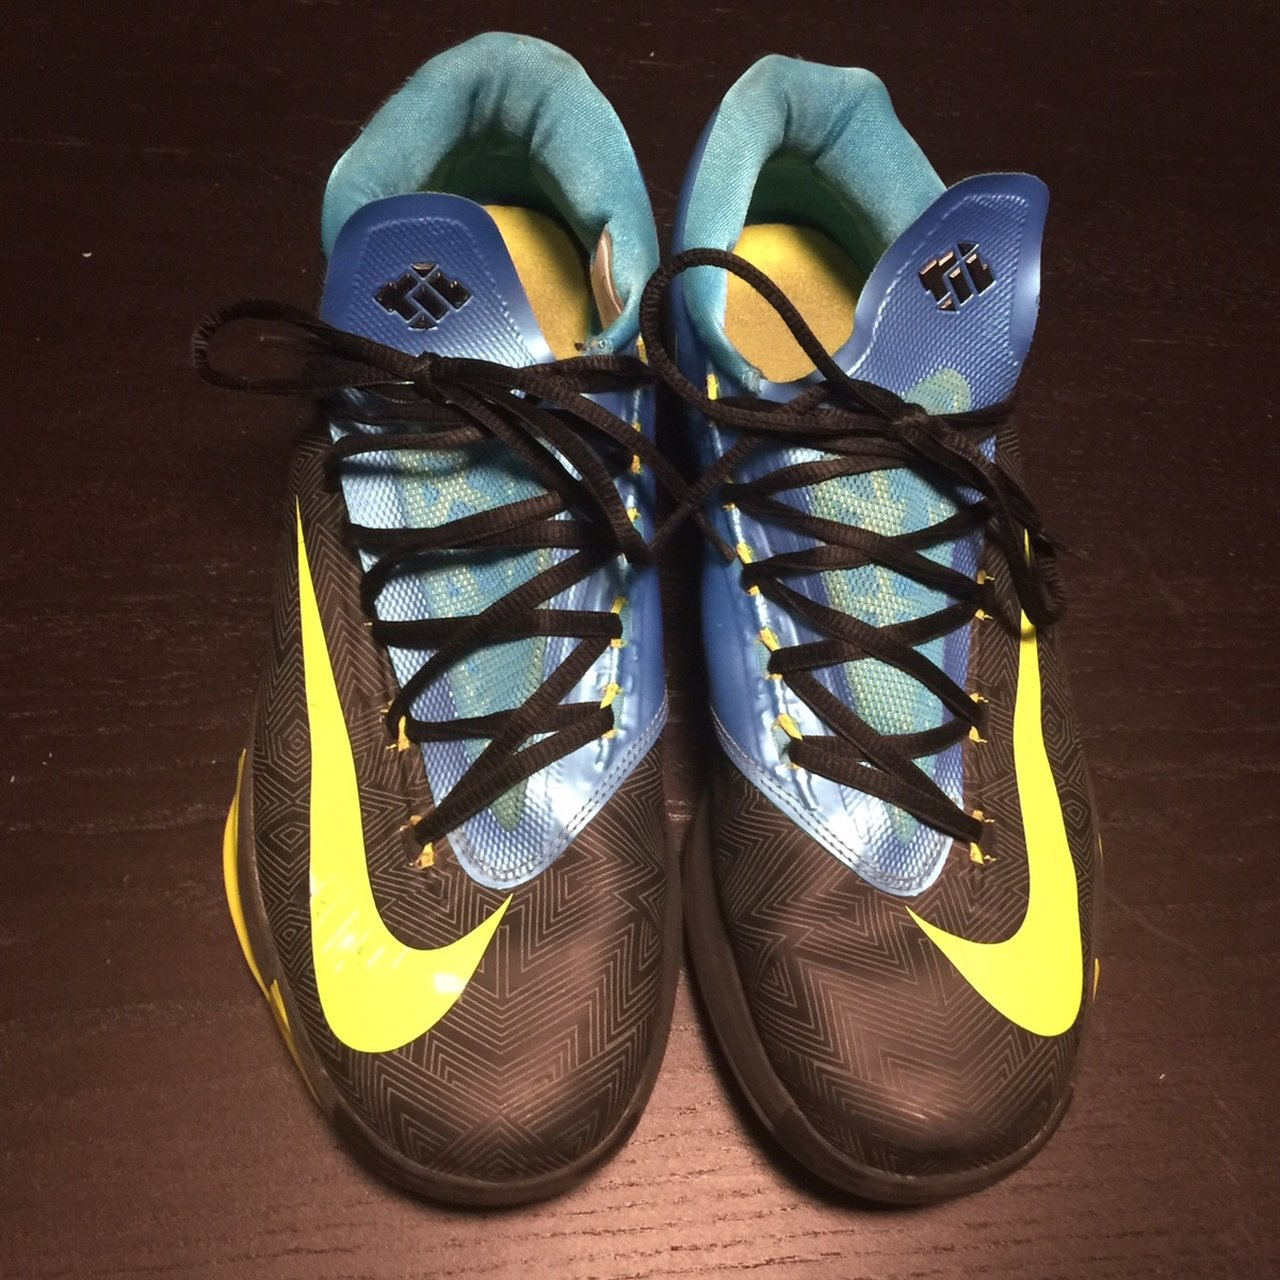 2ec3159415907 Nike KD 6 Size 10.5 Good condition 7 10 still have some life - Depop